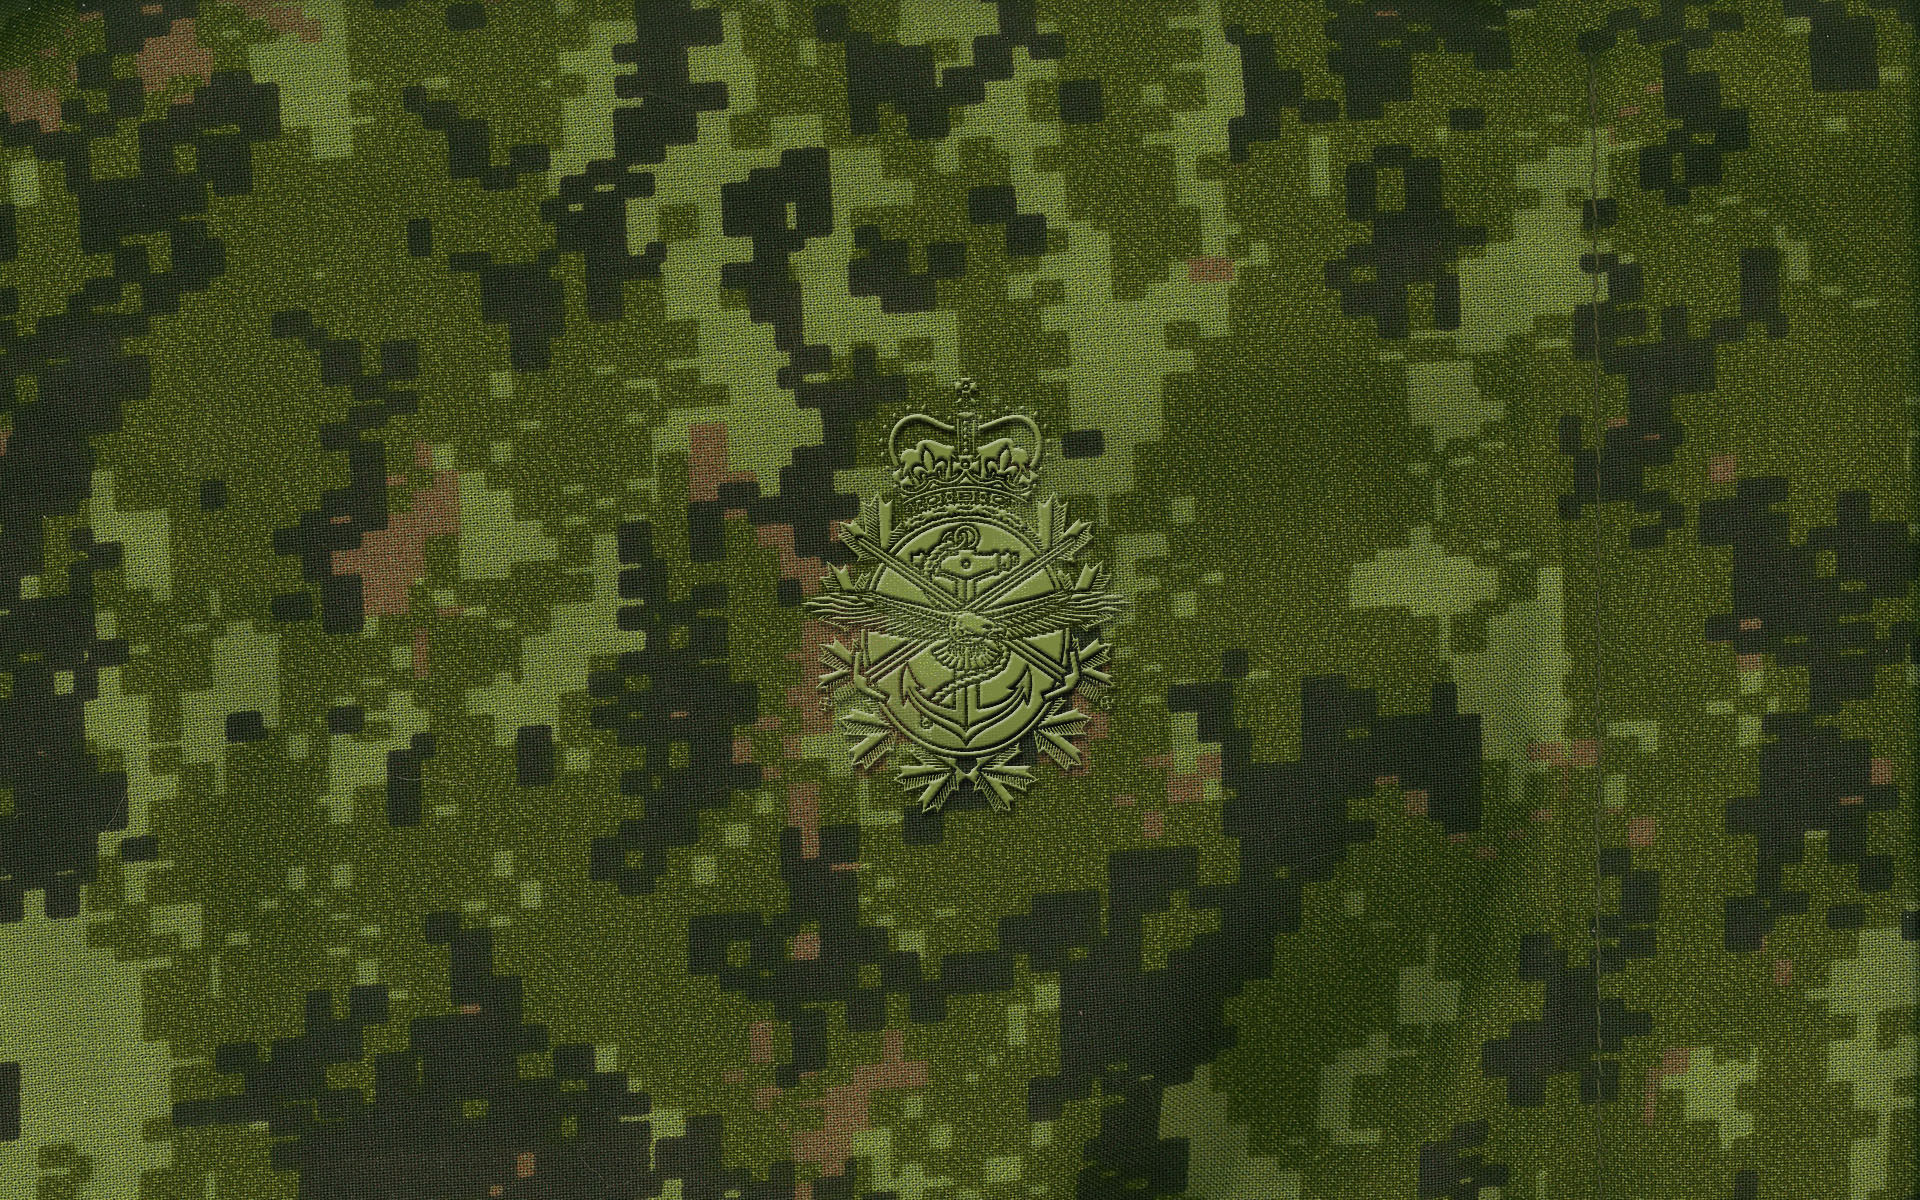 Download Camouflage Cadpat Wallpaper 1920x1200 Camouflage Cadpat 1920x1200